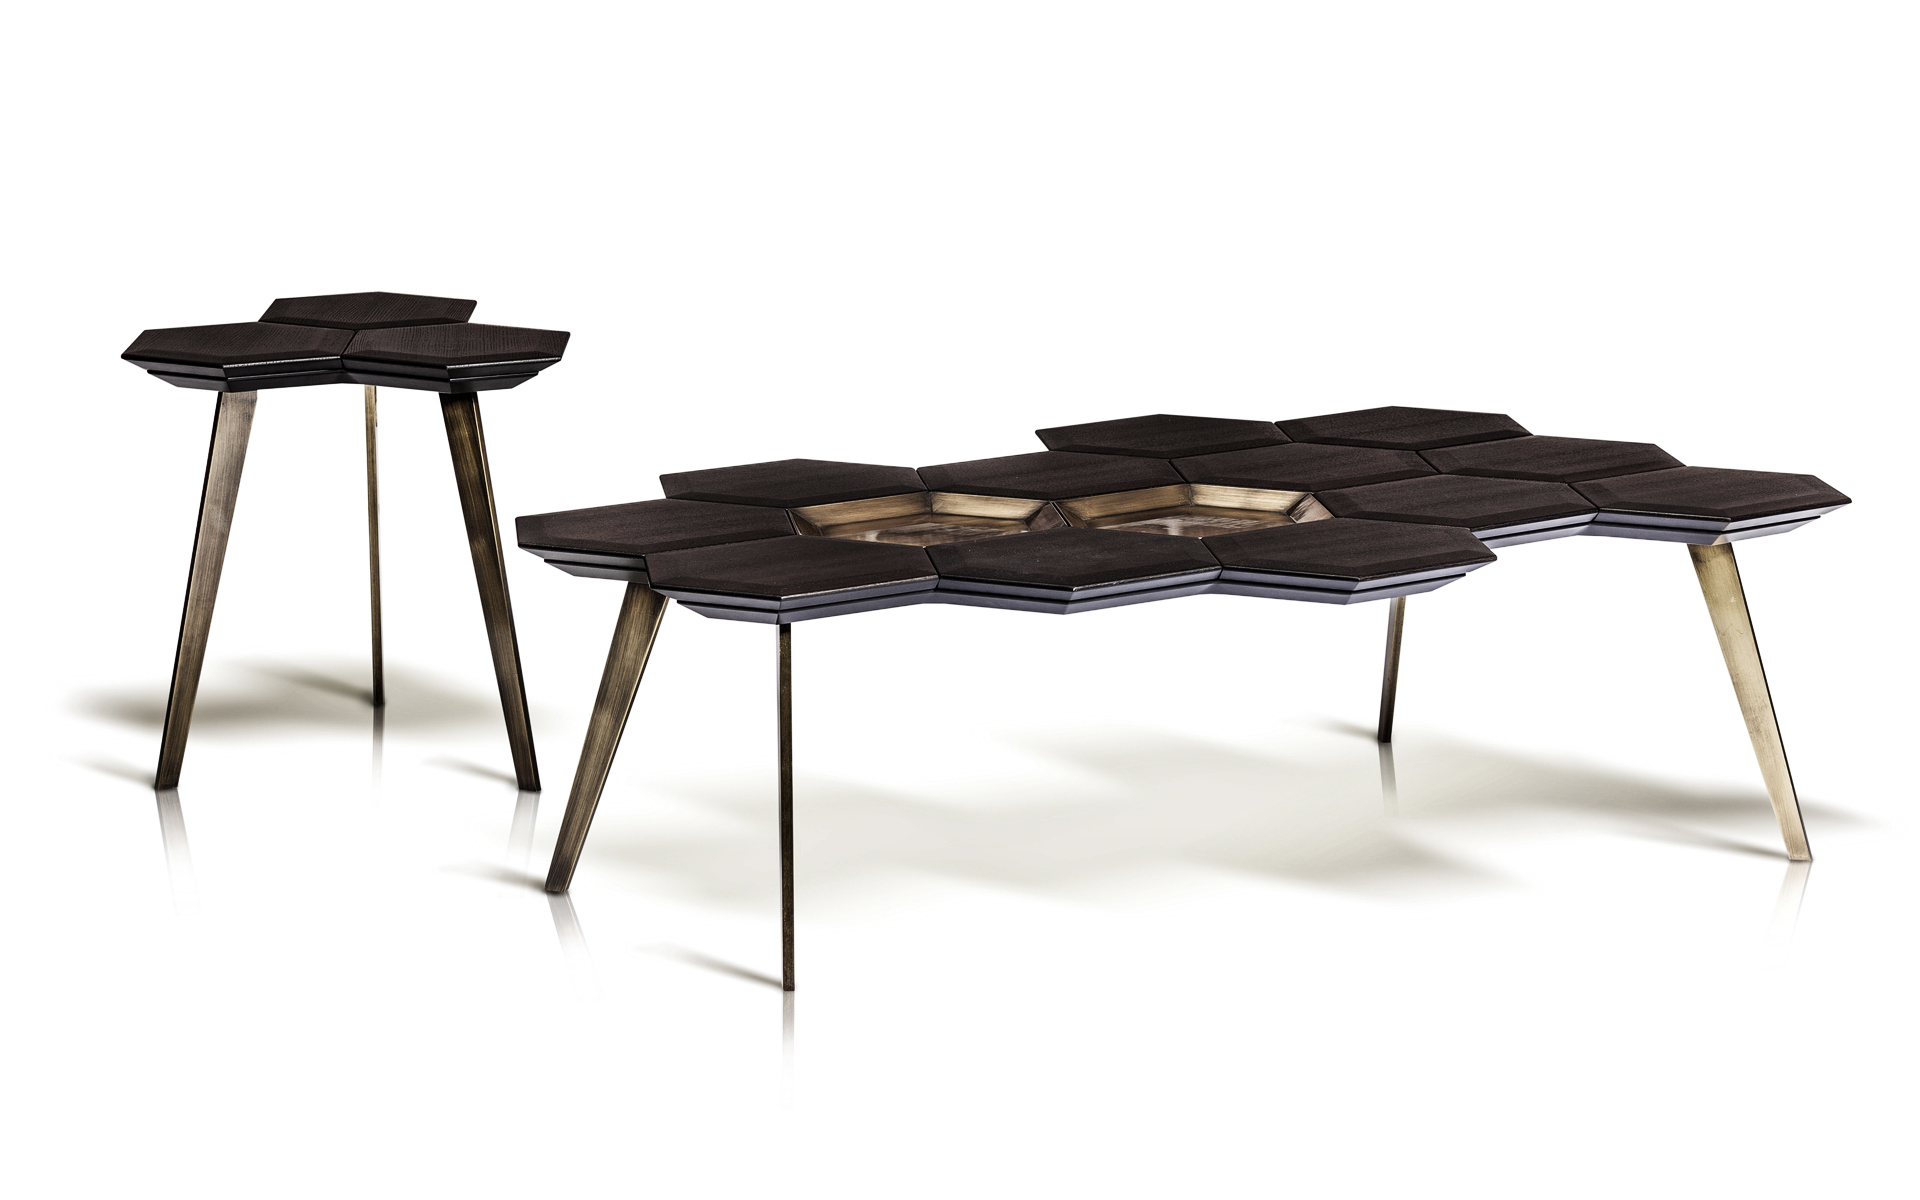 Icy-A Coffee Table & Side Table by Marconato Maurizio & Terry Zappa for ENNE